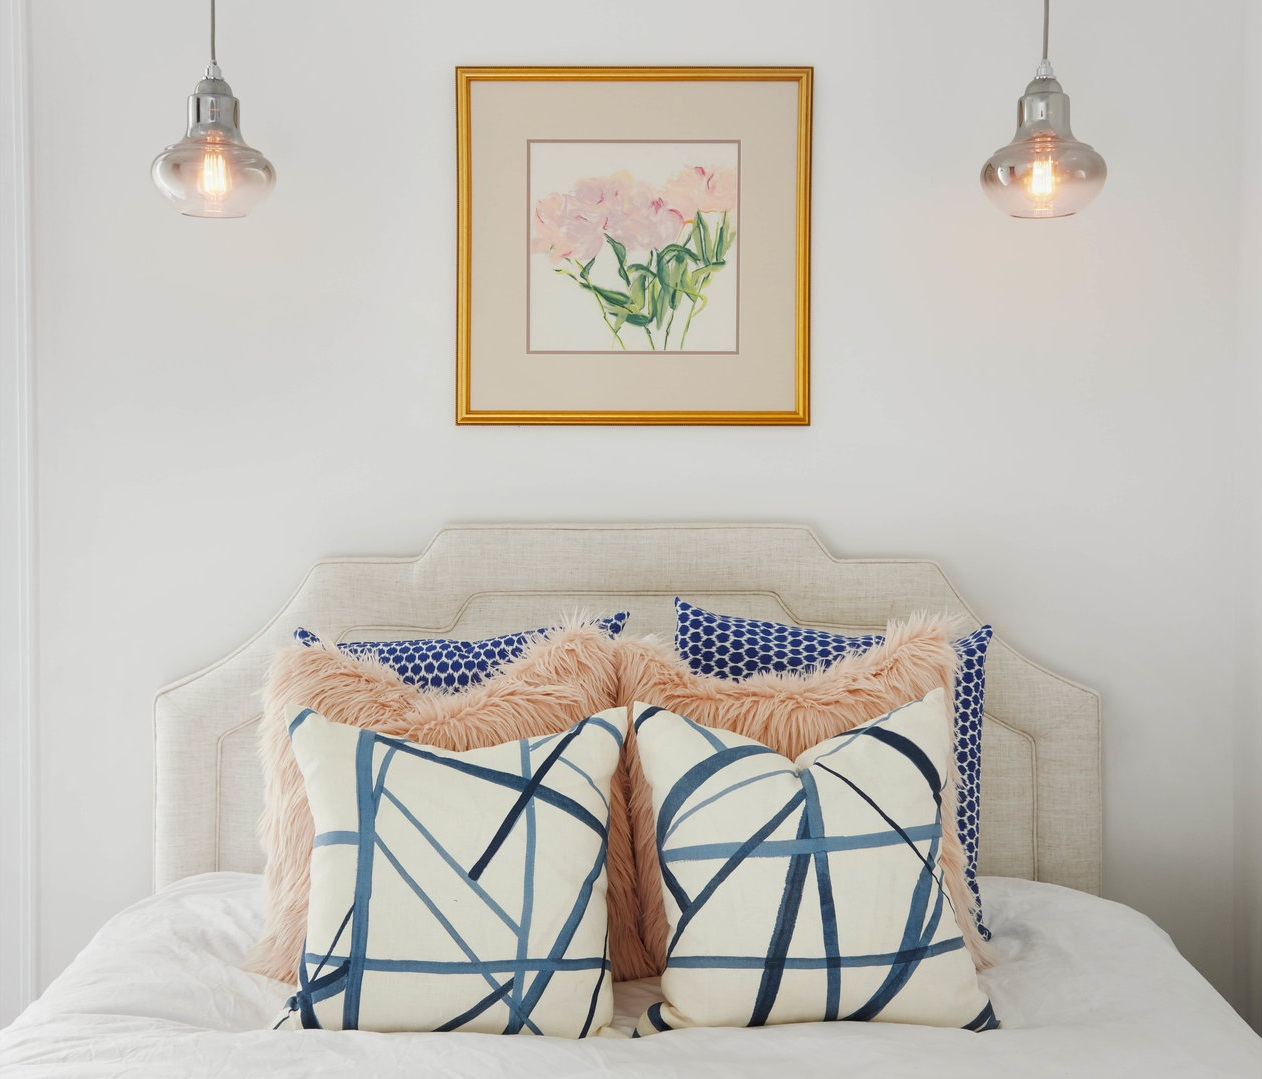 accent pillows 5.jpg